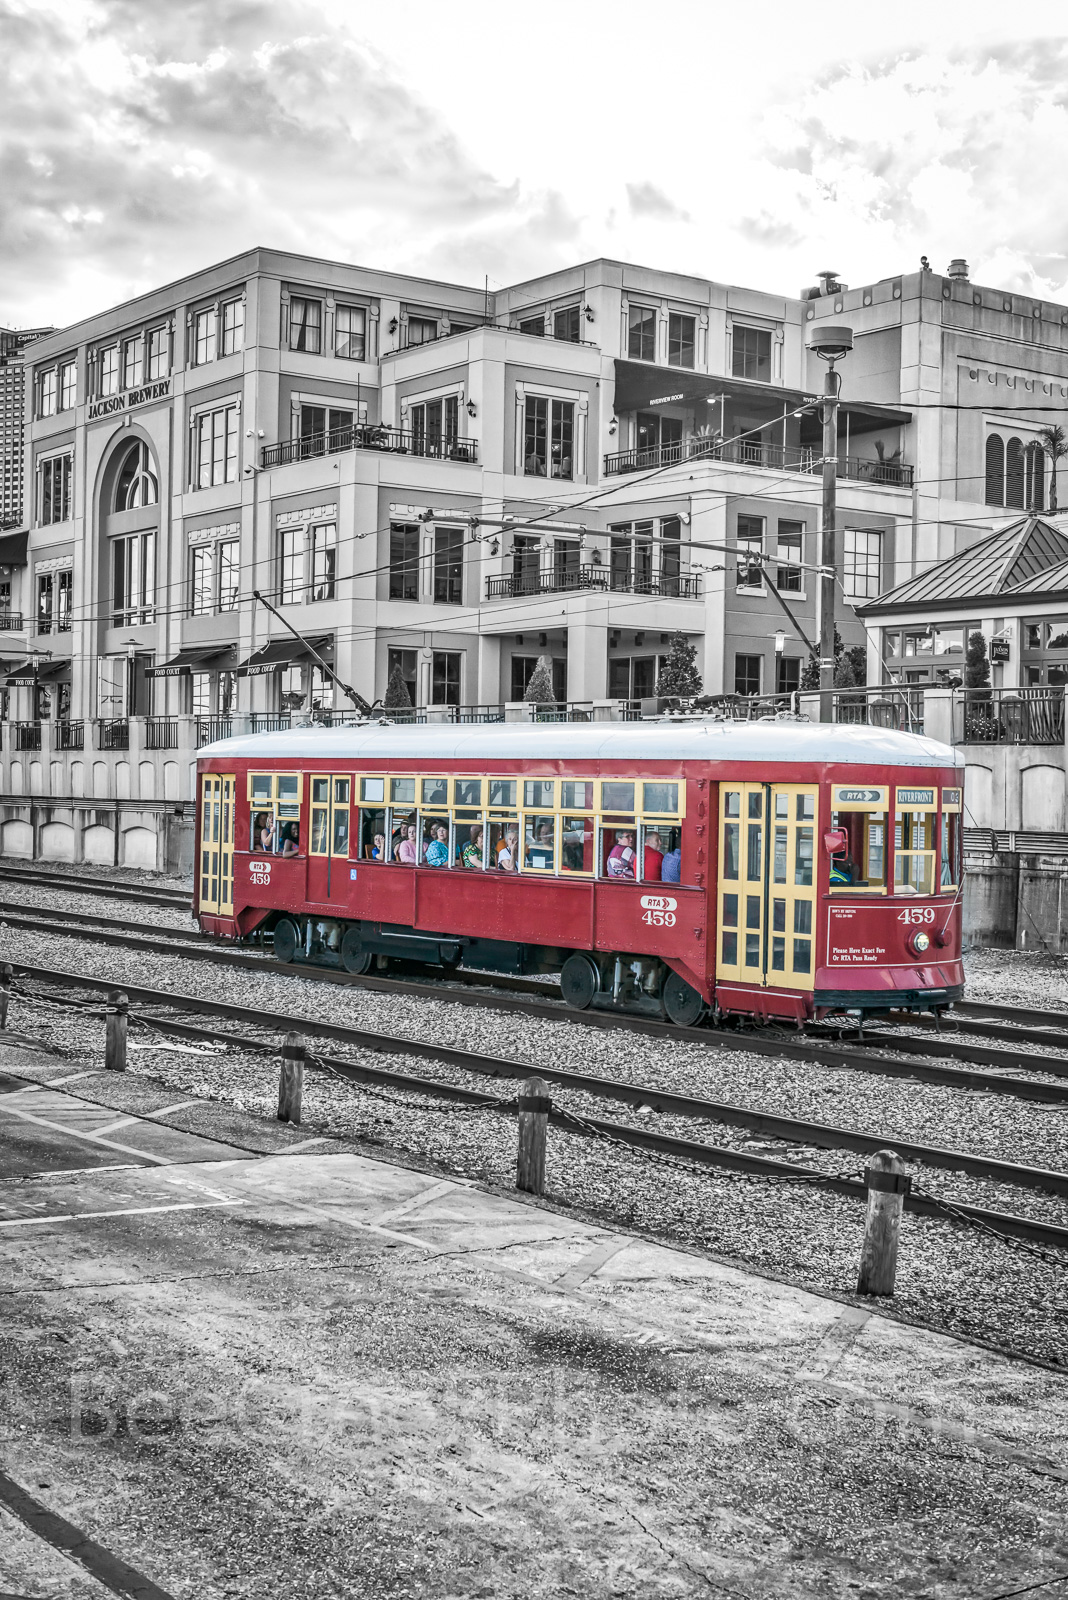 New Orleans Street Car BW - Took this image of the New Orleans red street car out side of the Jackson Brewery taking...